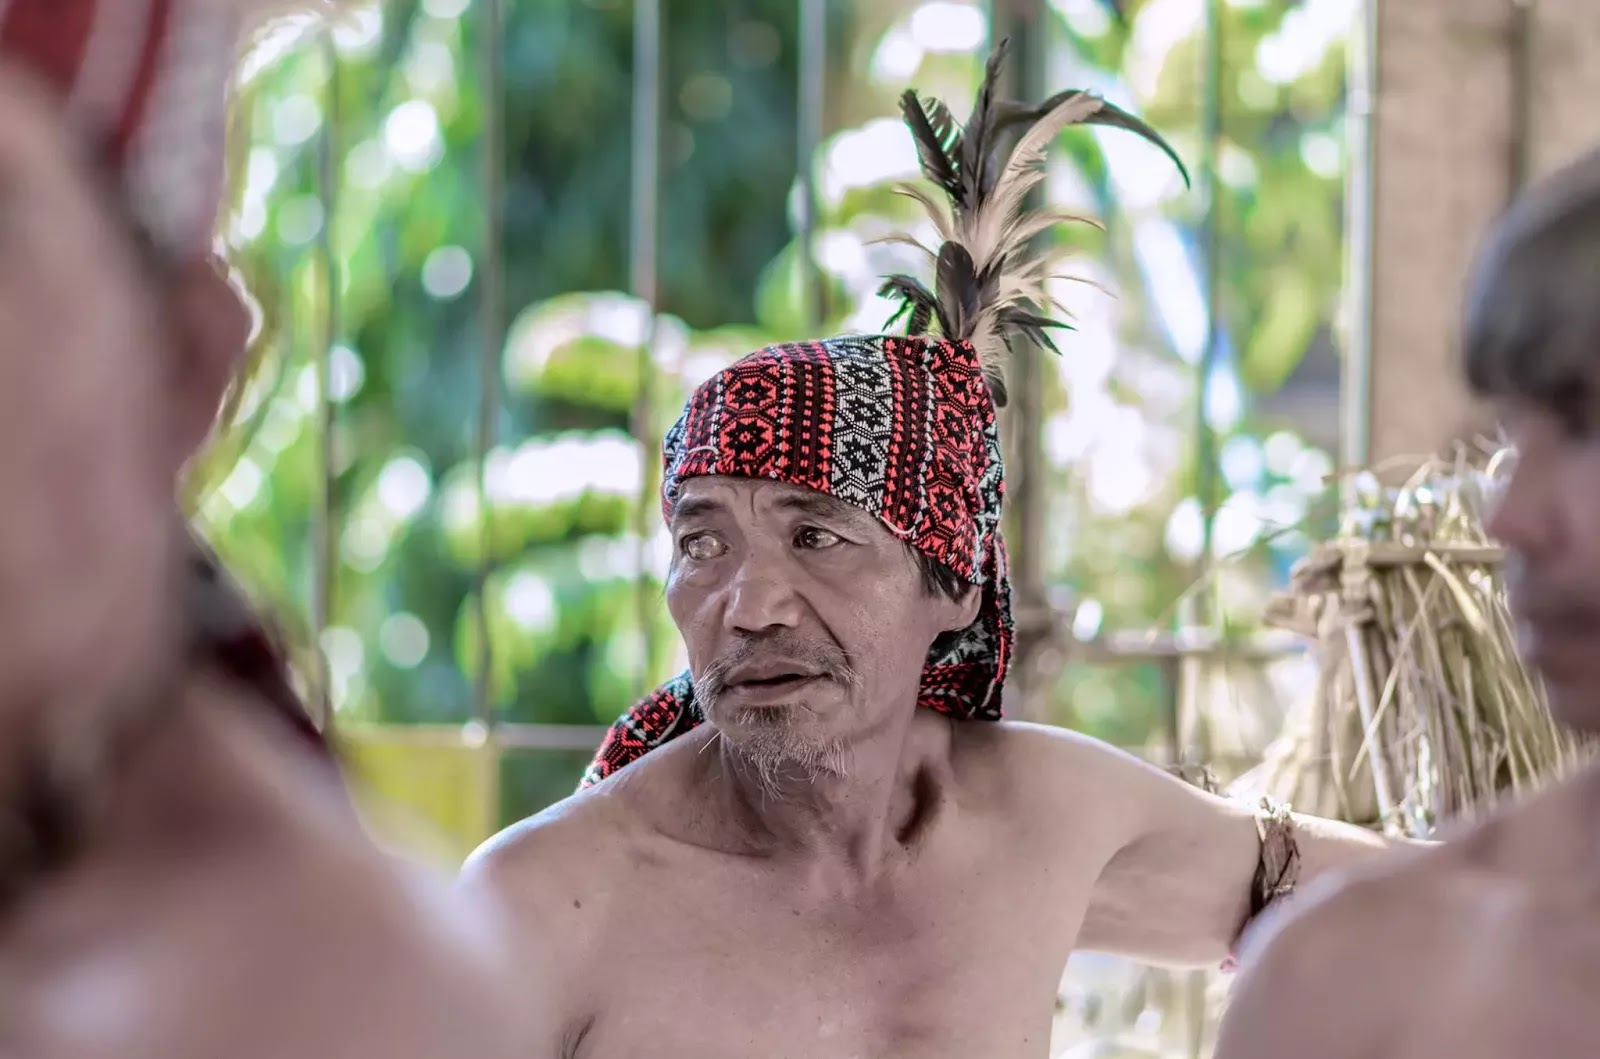 Ethno Indigenous Man Cloth Headgear with Feathers Portrait Head Gear